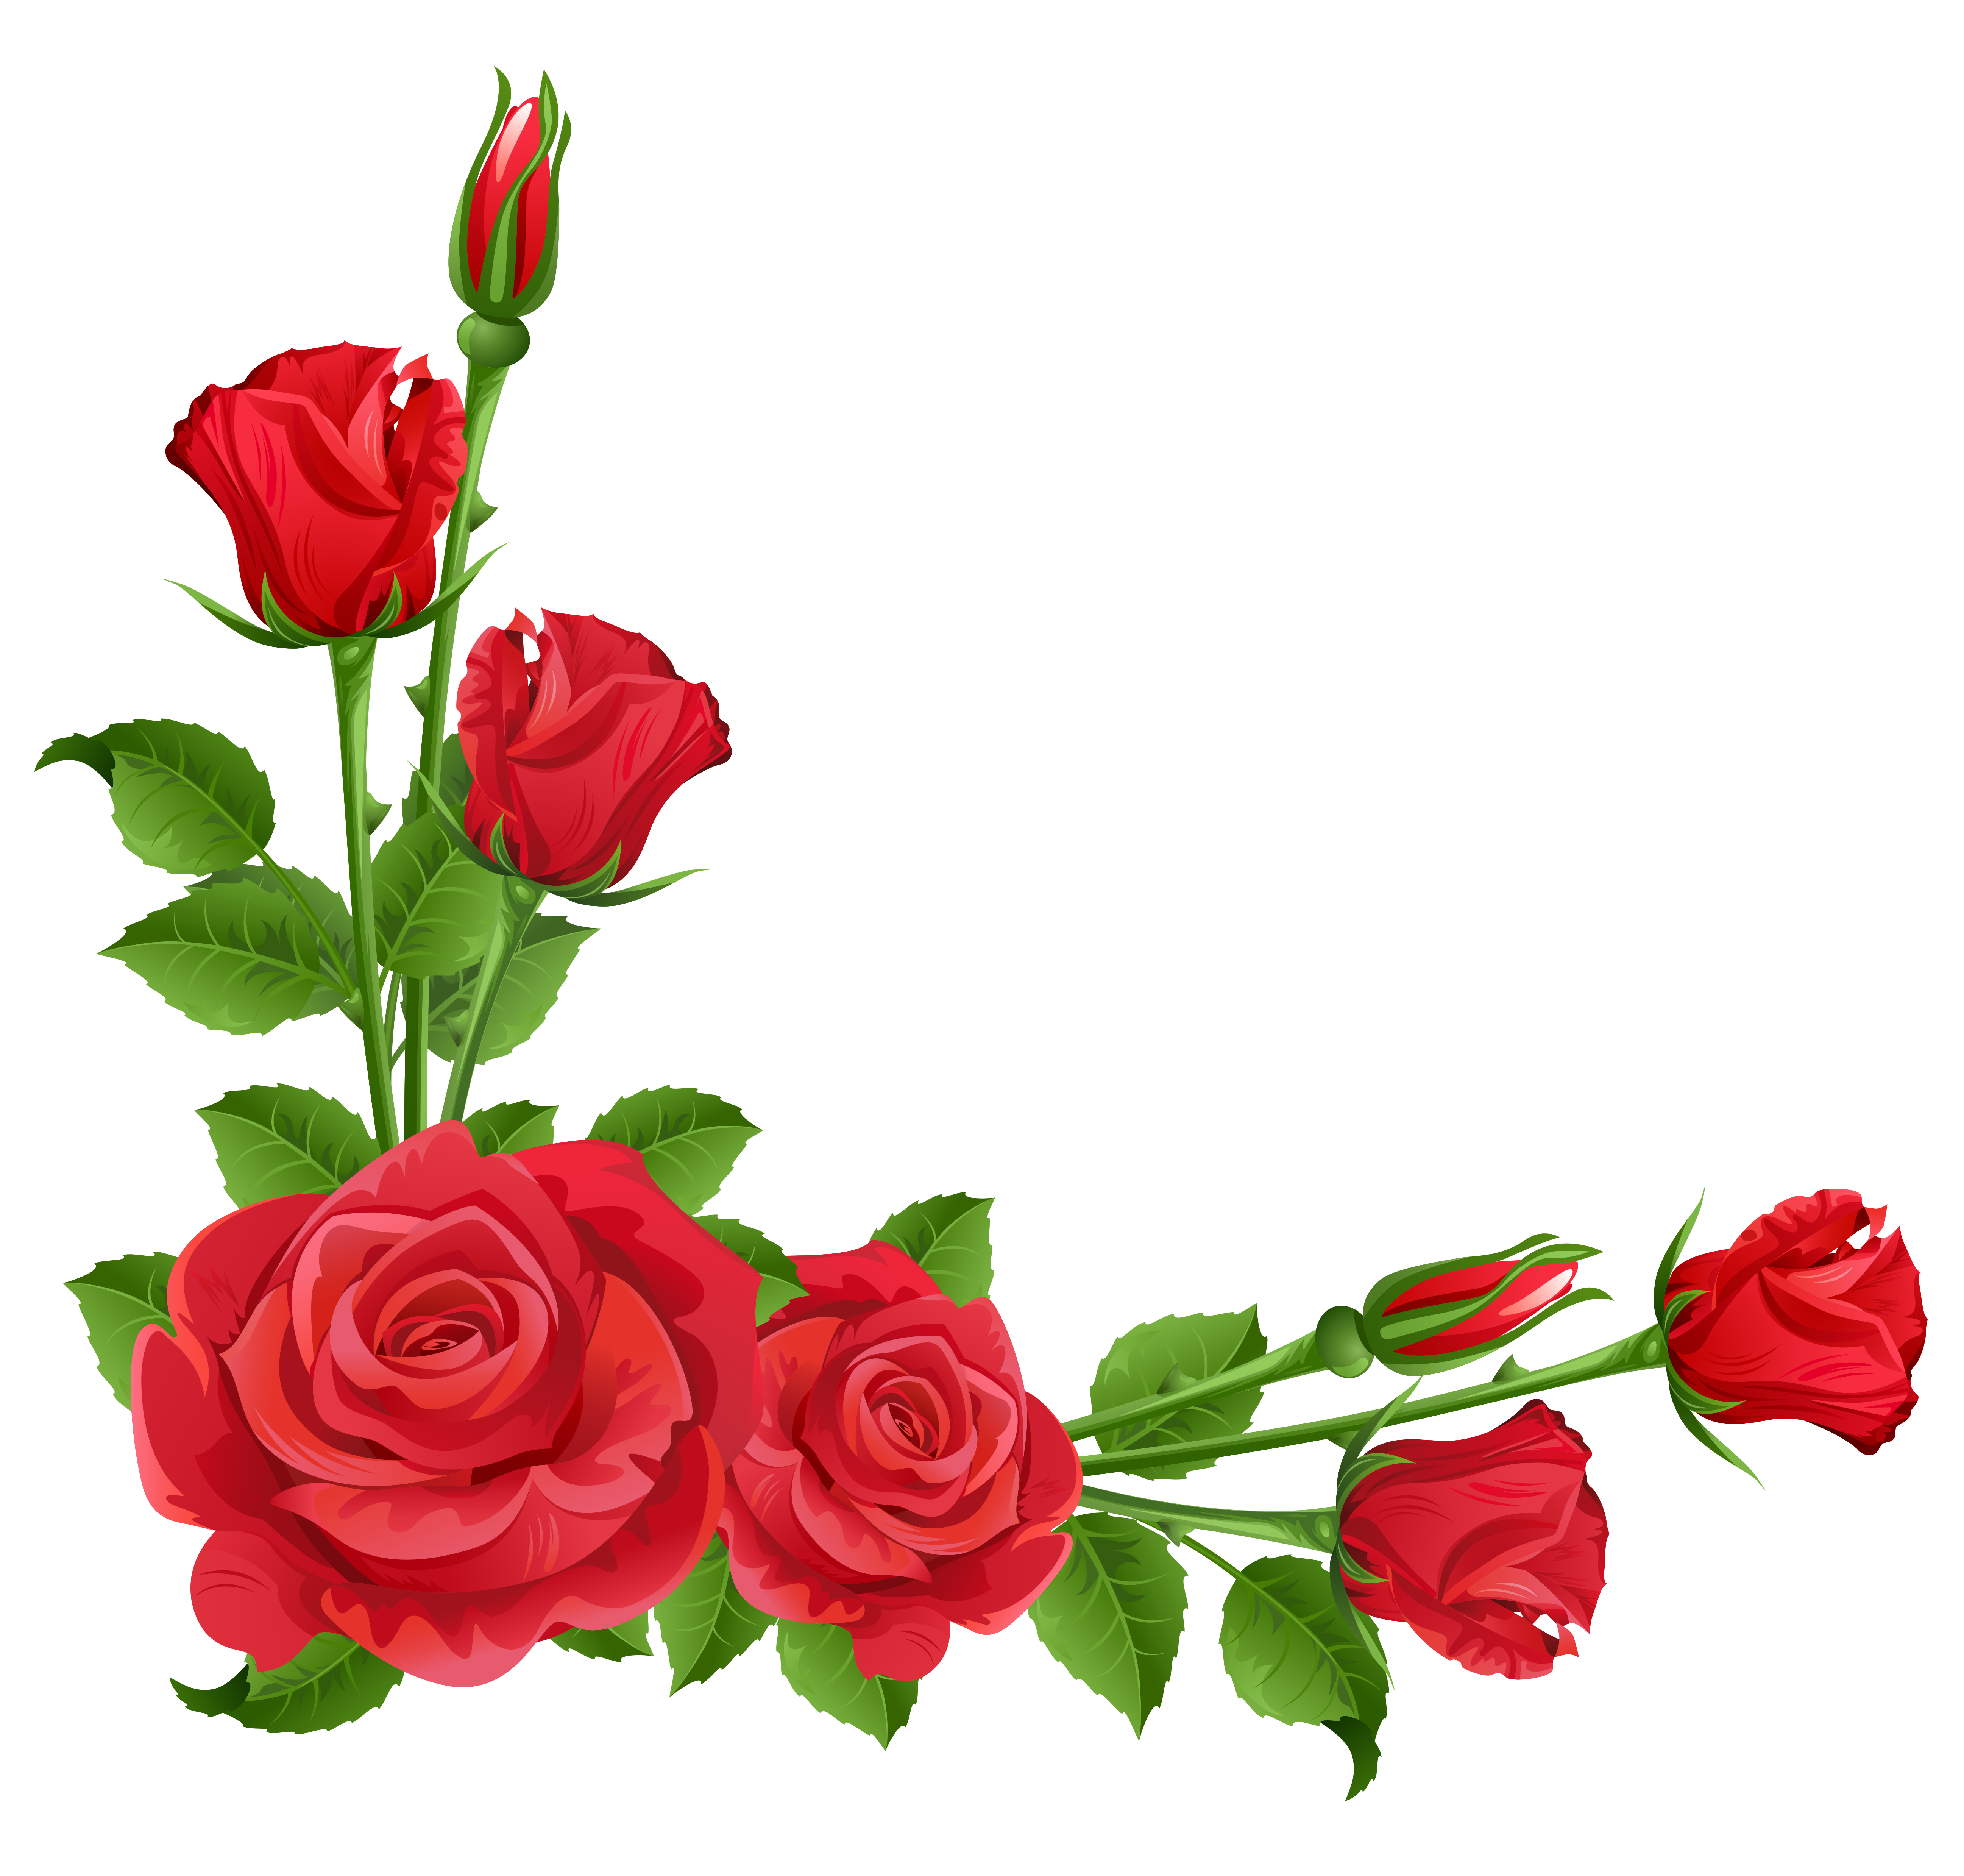 5187x4954 Red Roses Transparent Png Clipartu200b Gallery Yopriceville